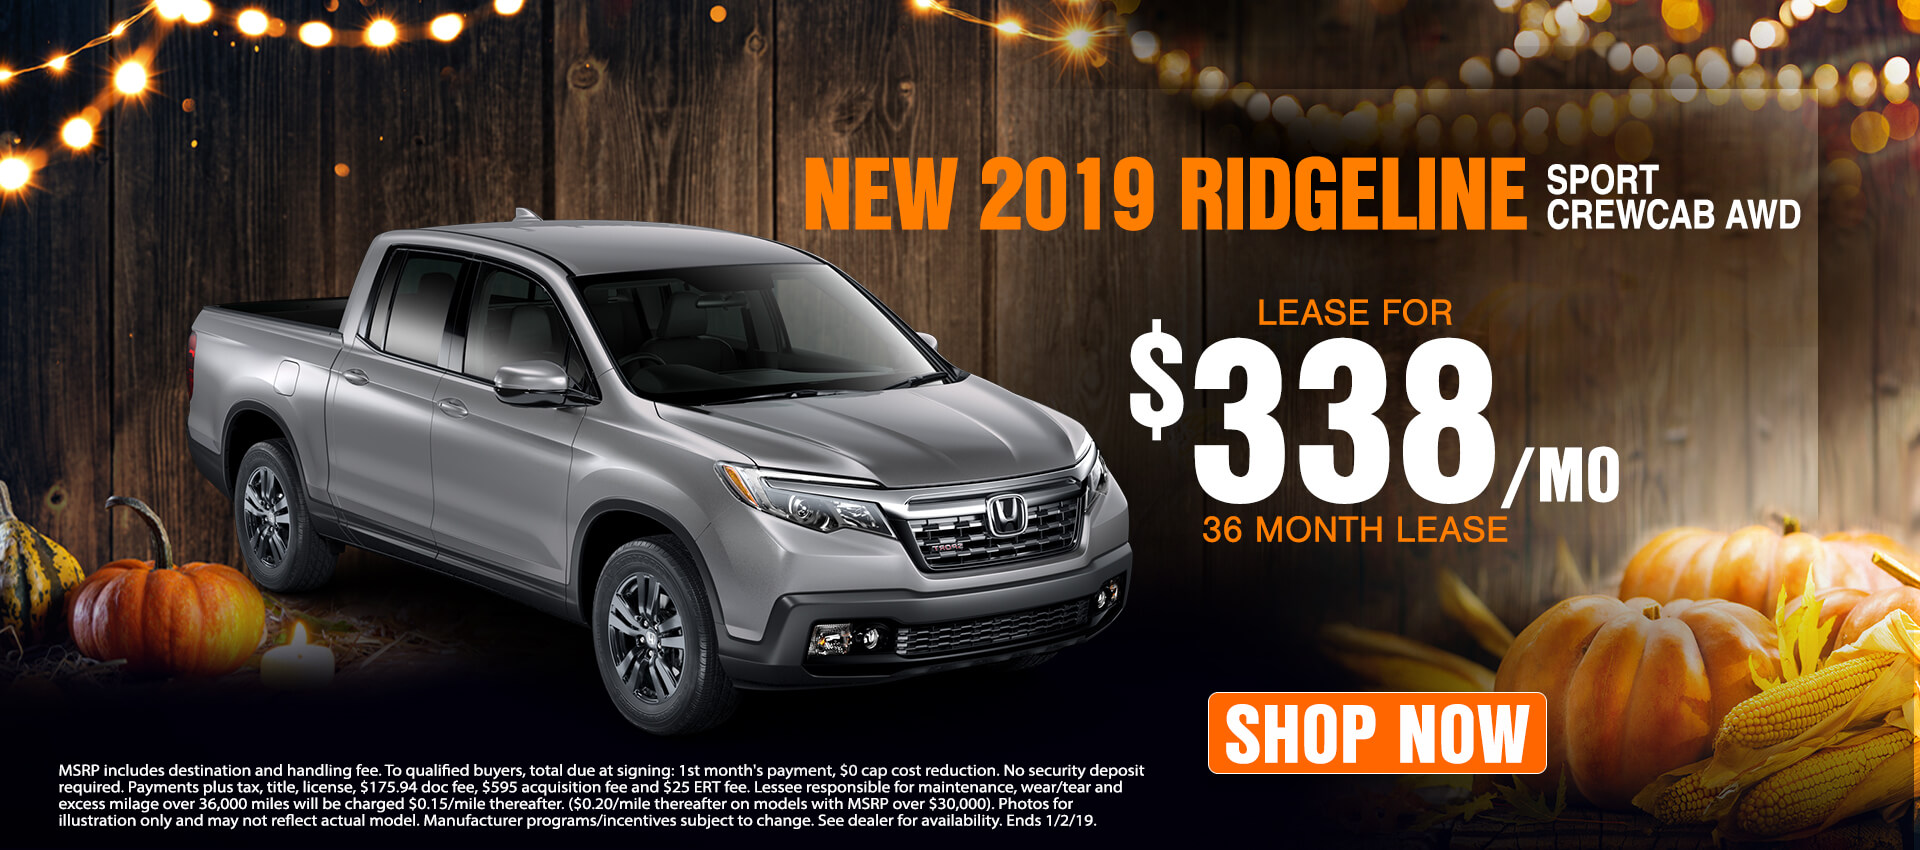 New Used Honda Dealer Near Aurora Chicago Il Of Joliet 2007 Crv Parts Discount Factory Oem And 2019 Insight 319 Lease Ridgeline 338